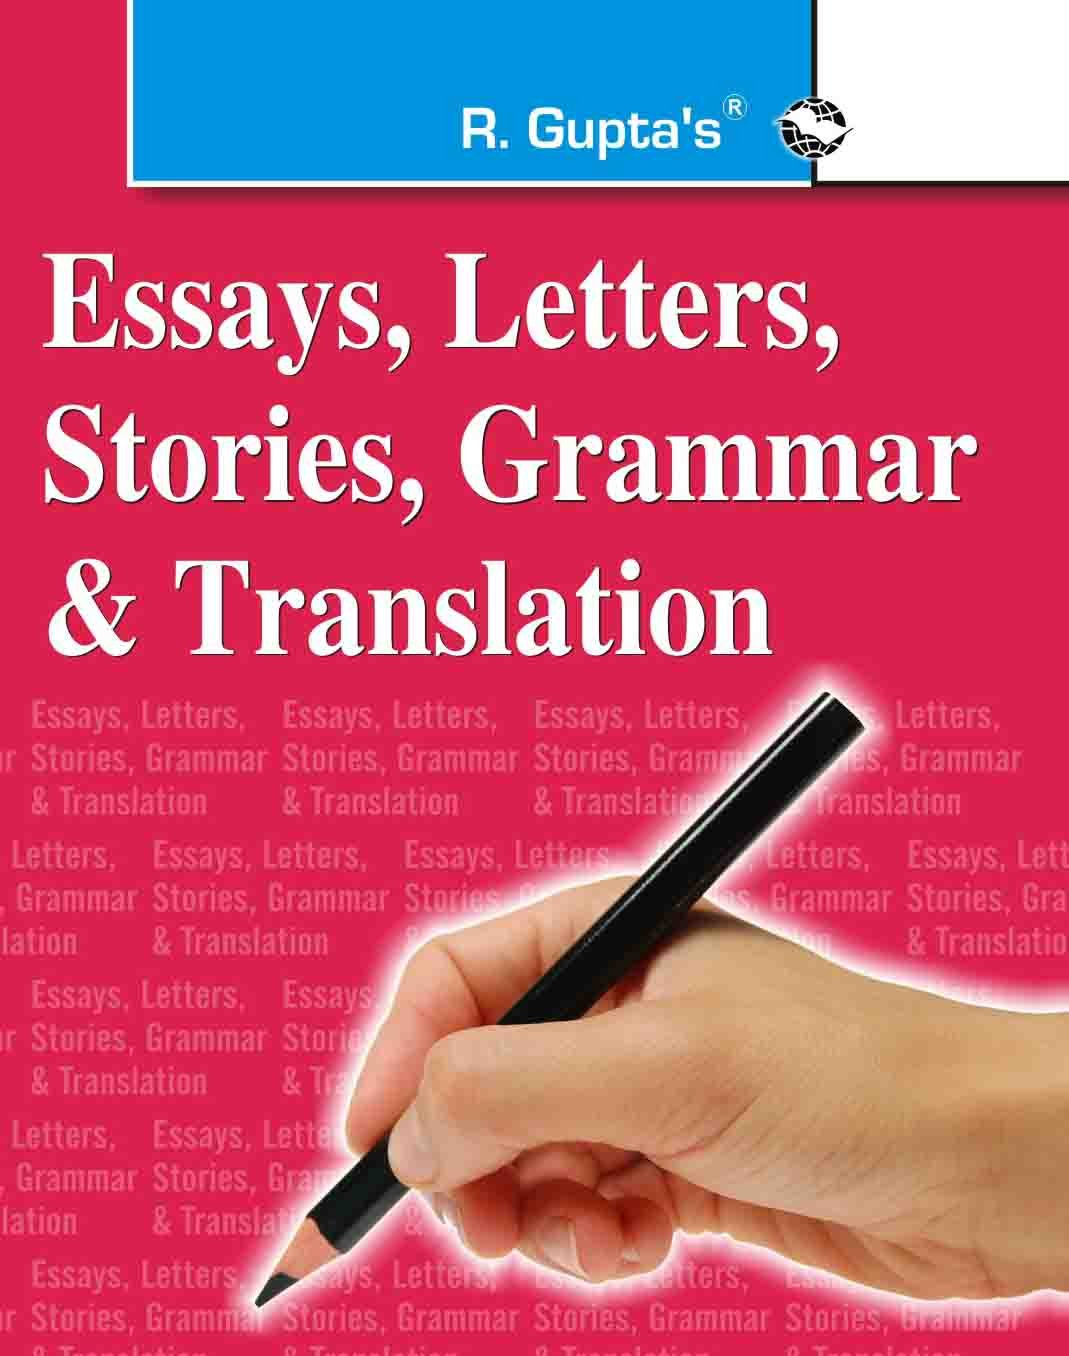 buy essays letters stories grammar etc english hindi essays  buy essays letters stories grammar etc english hindi essays letters book online at low prices in essays letters stories grammar etc